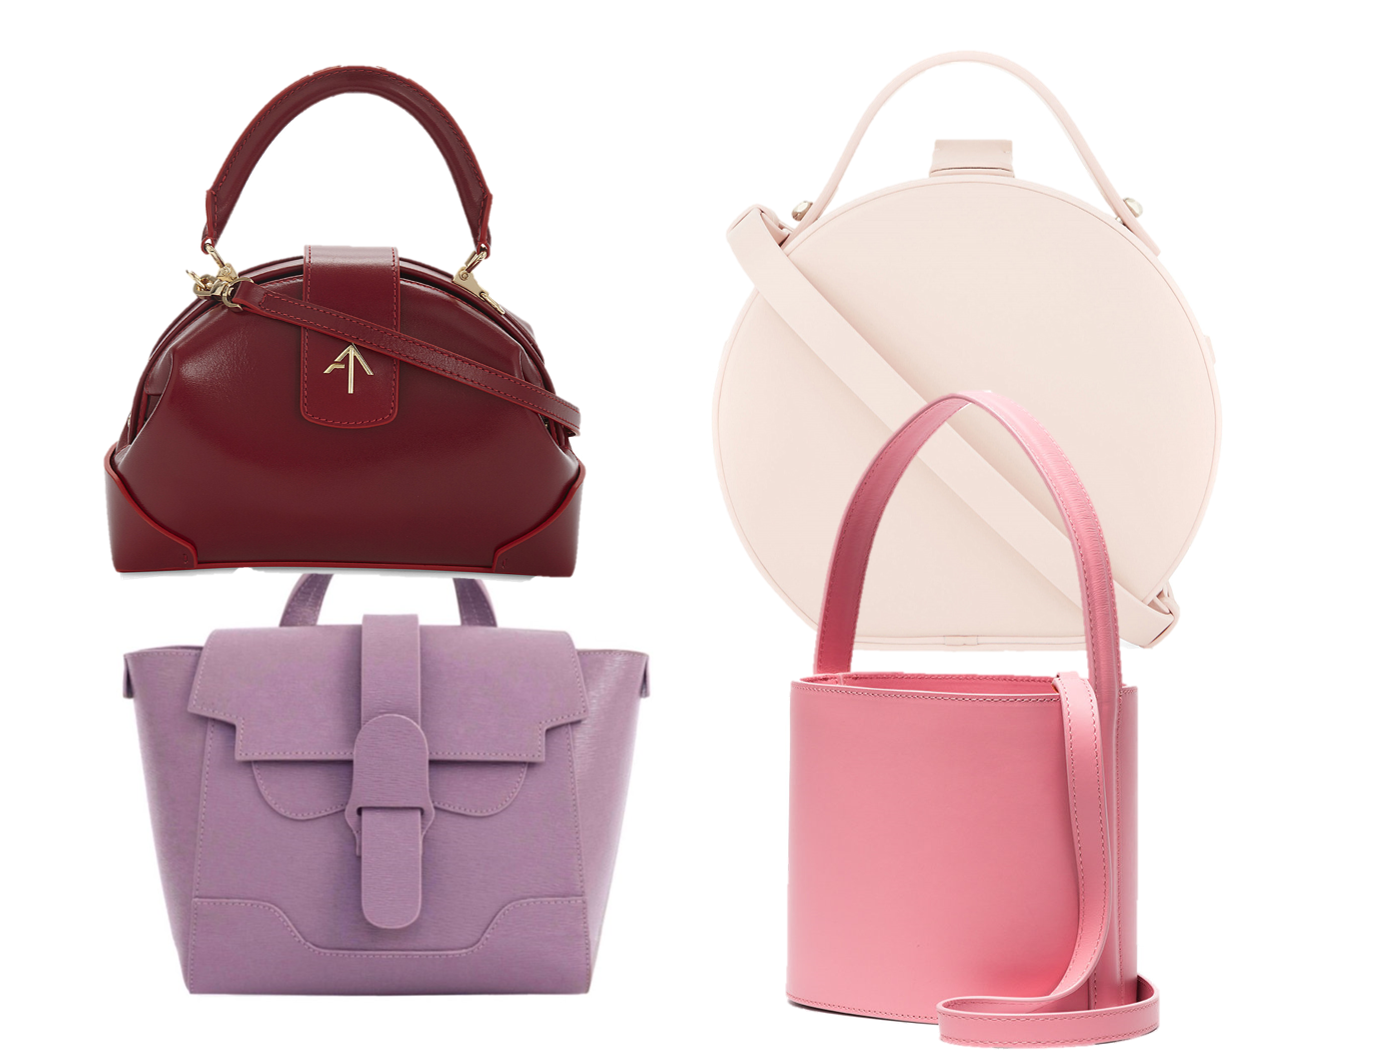 Fashionable handbag brands that you should know about